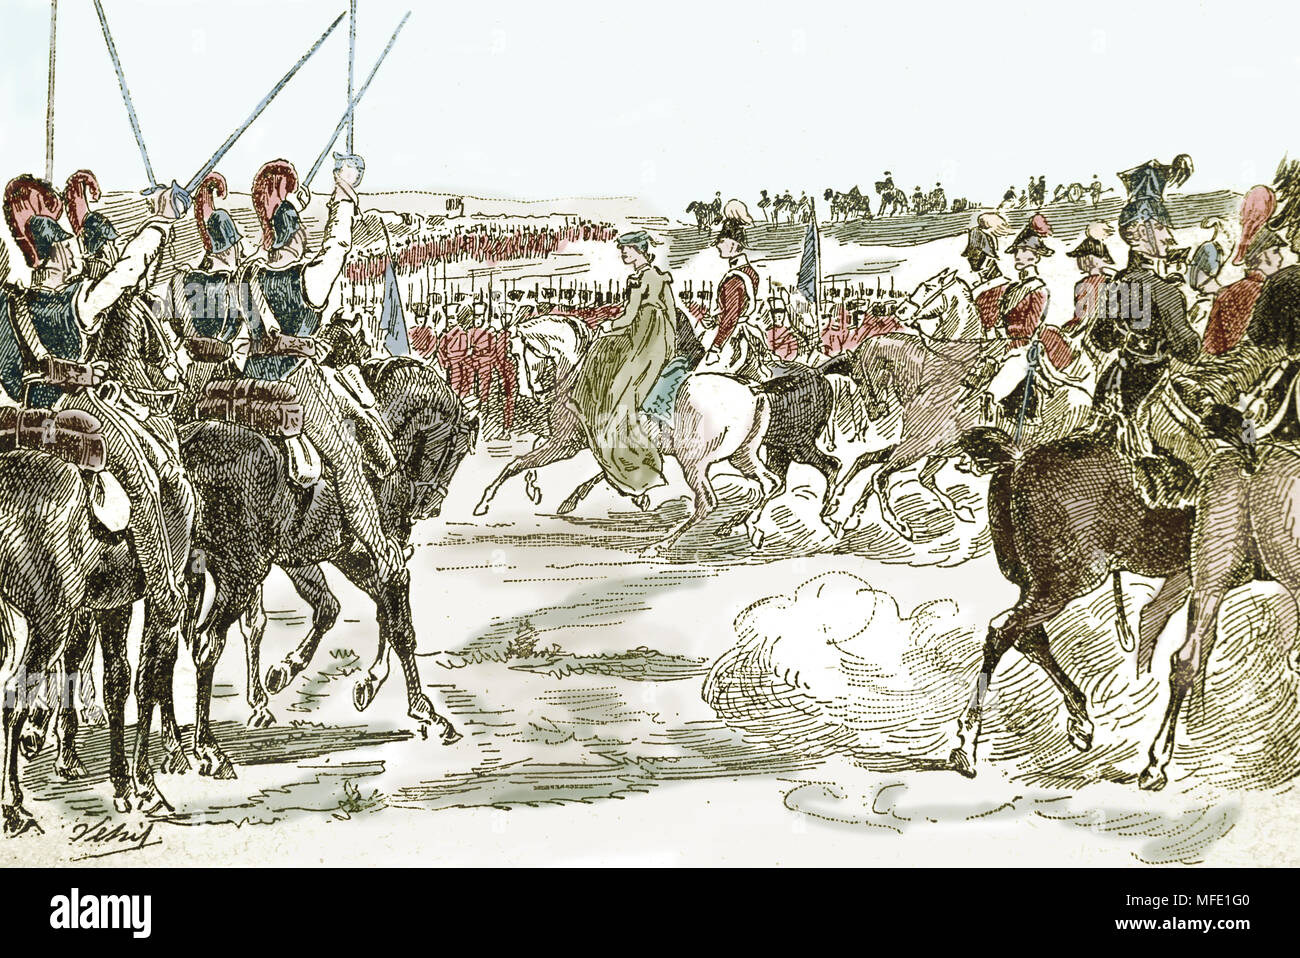 War of the fourth coalition. Battle of Jena, 1806. Queen Louise of Prussia visiting the troops. Engraving, 19th century. - Stock Image